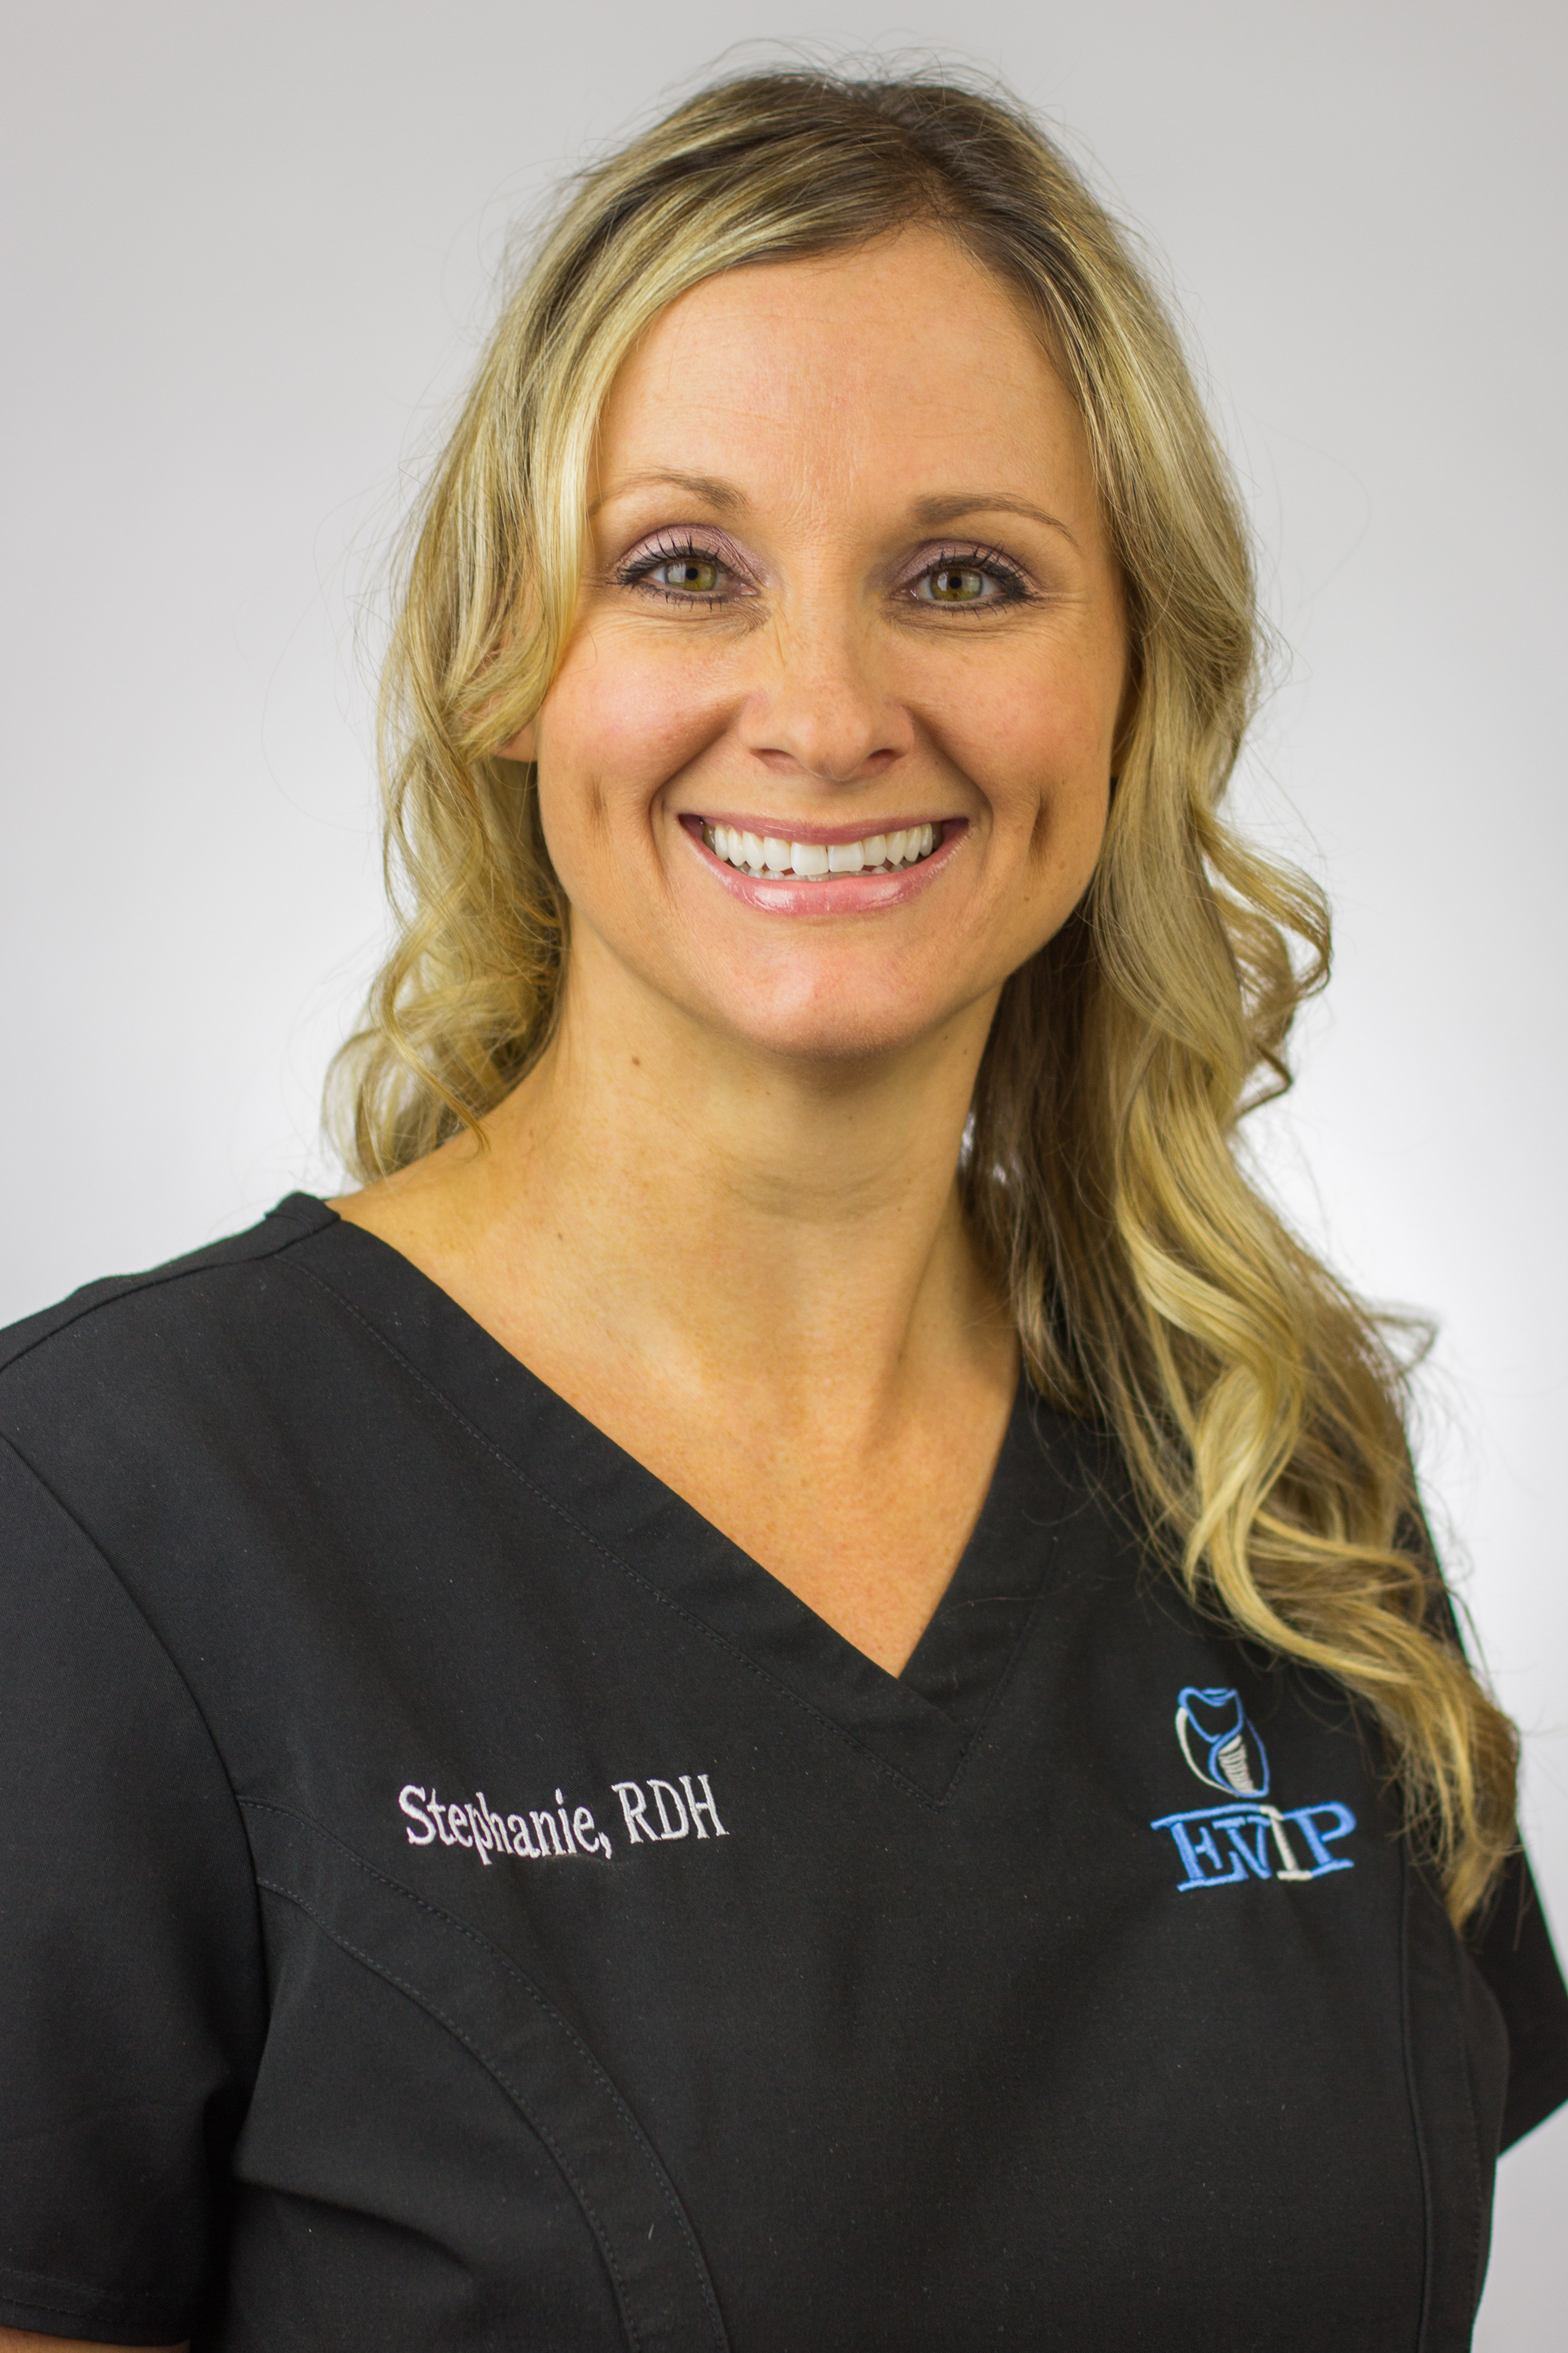 Stephanie treats patients with care at East Valley Implant